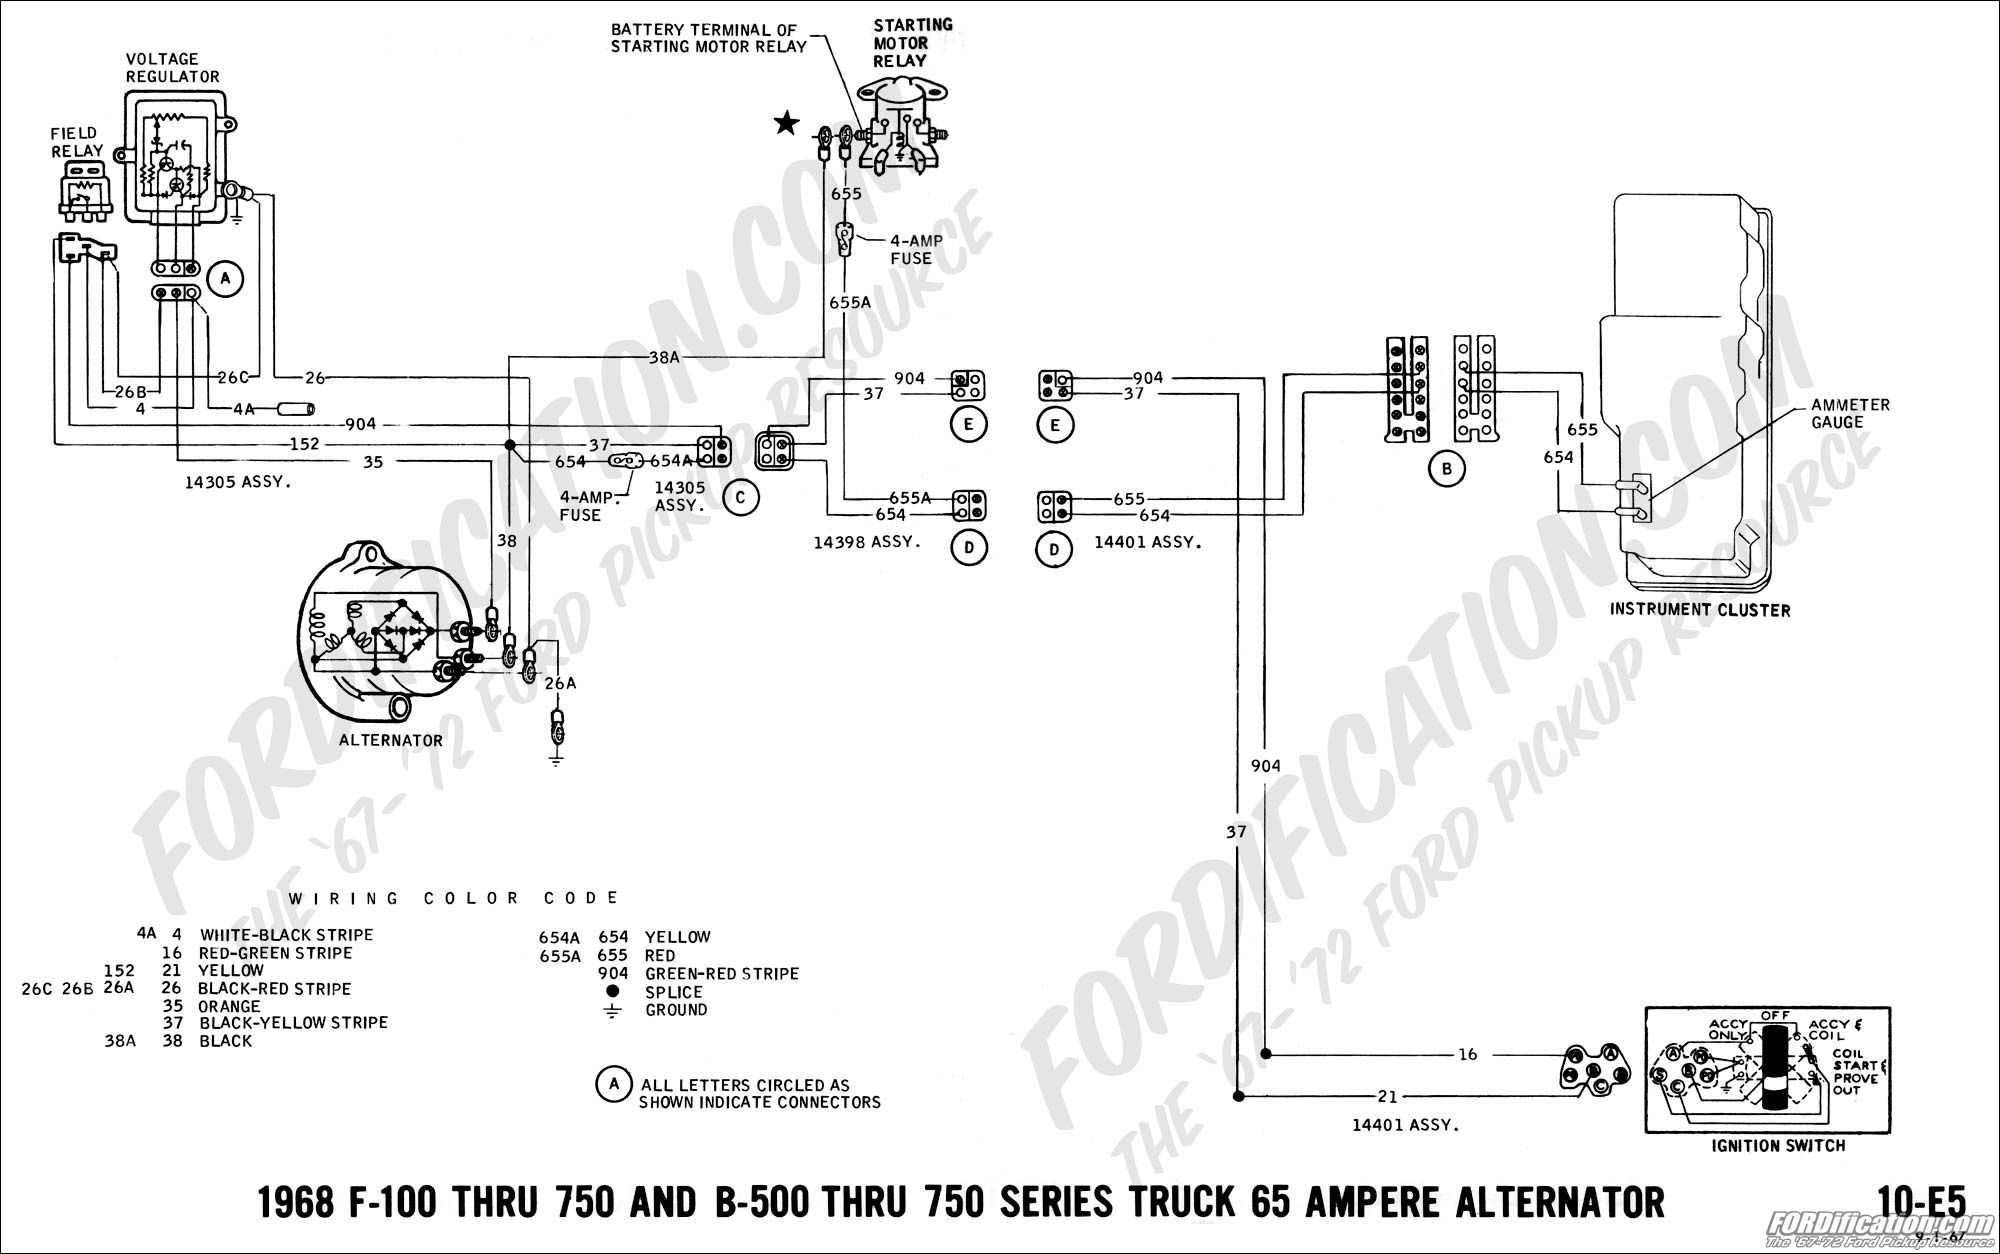 68 ford alternator wiring diagram 76 ford f150 diagram, 197168 ford alternator wiring diagram